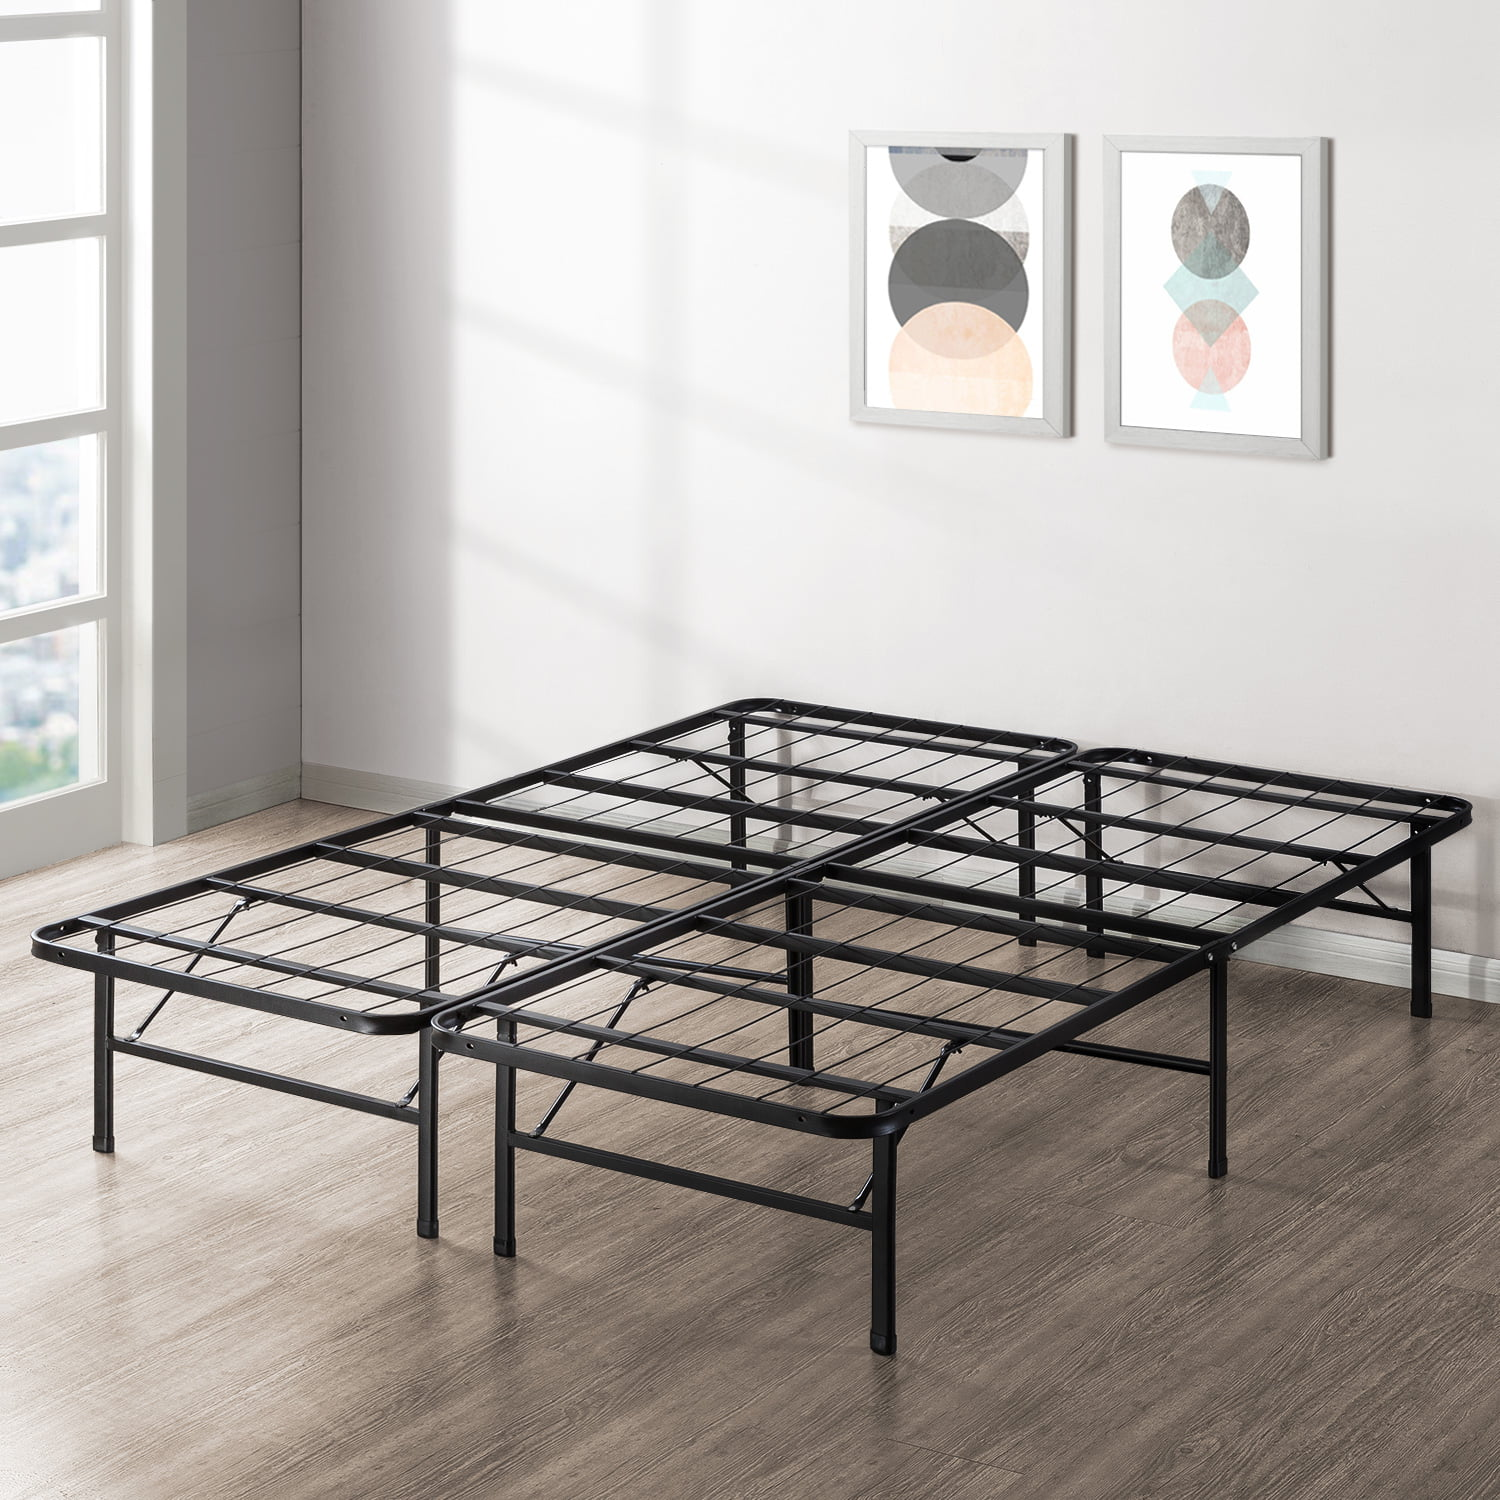 Best Price Mattress Innovative Steel Platform Bed Frame Multiple Sizes Walmart Com Walmart Com